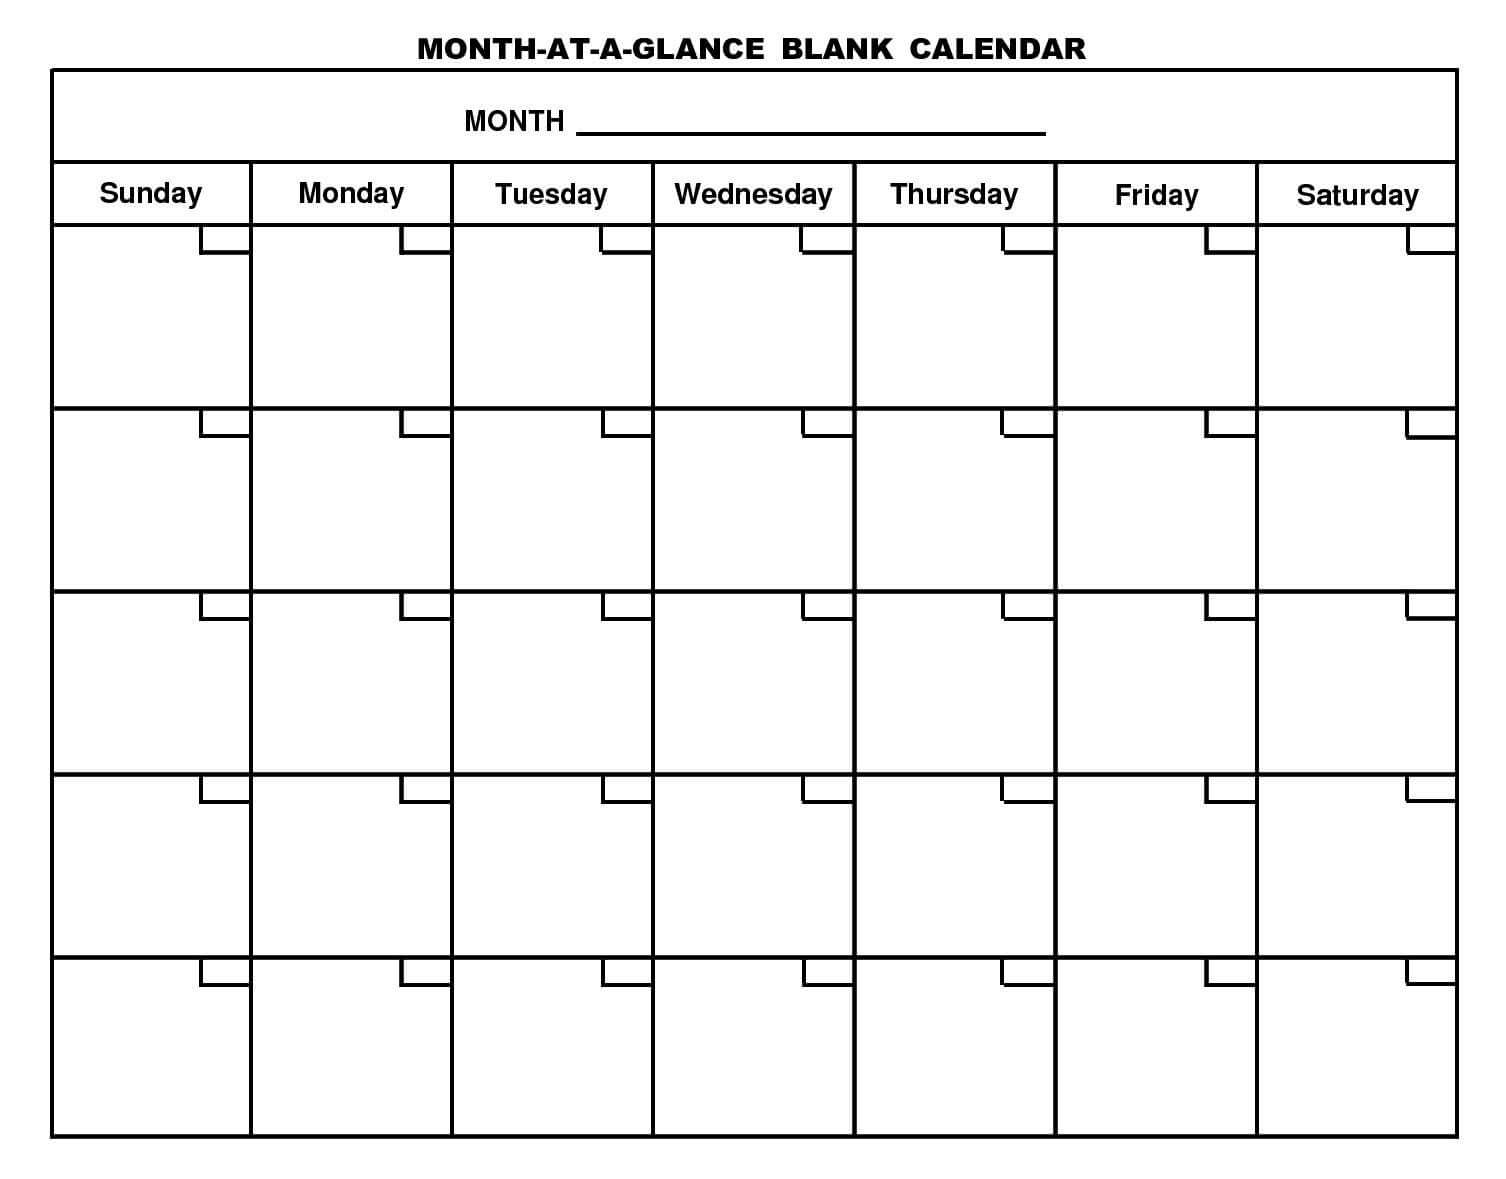 Month At A Glance Blank Calendar | Monthly Printable Calender With Month At A Glance Blank Calendar Template